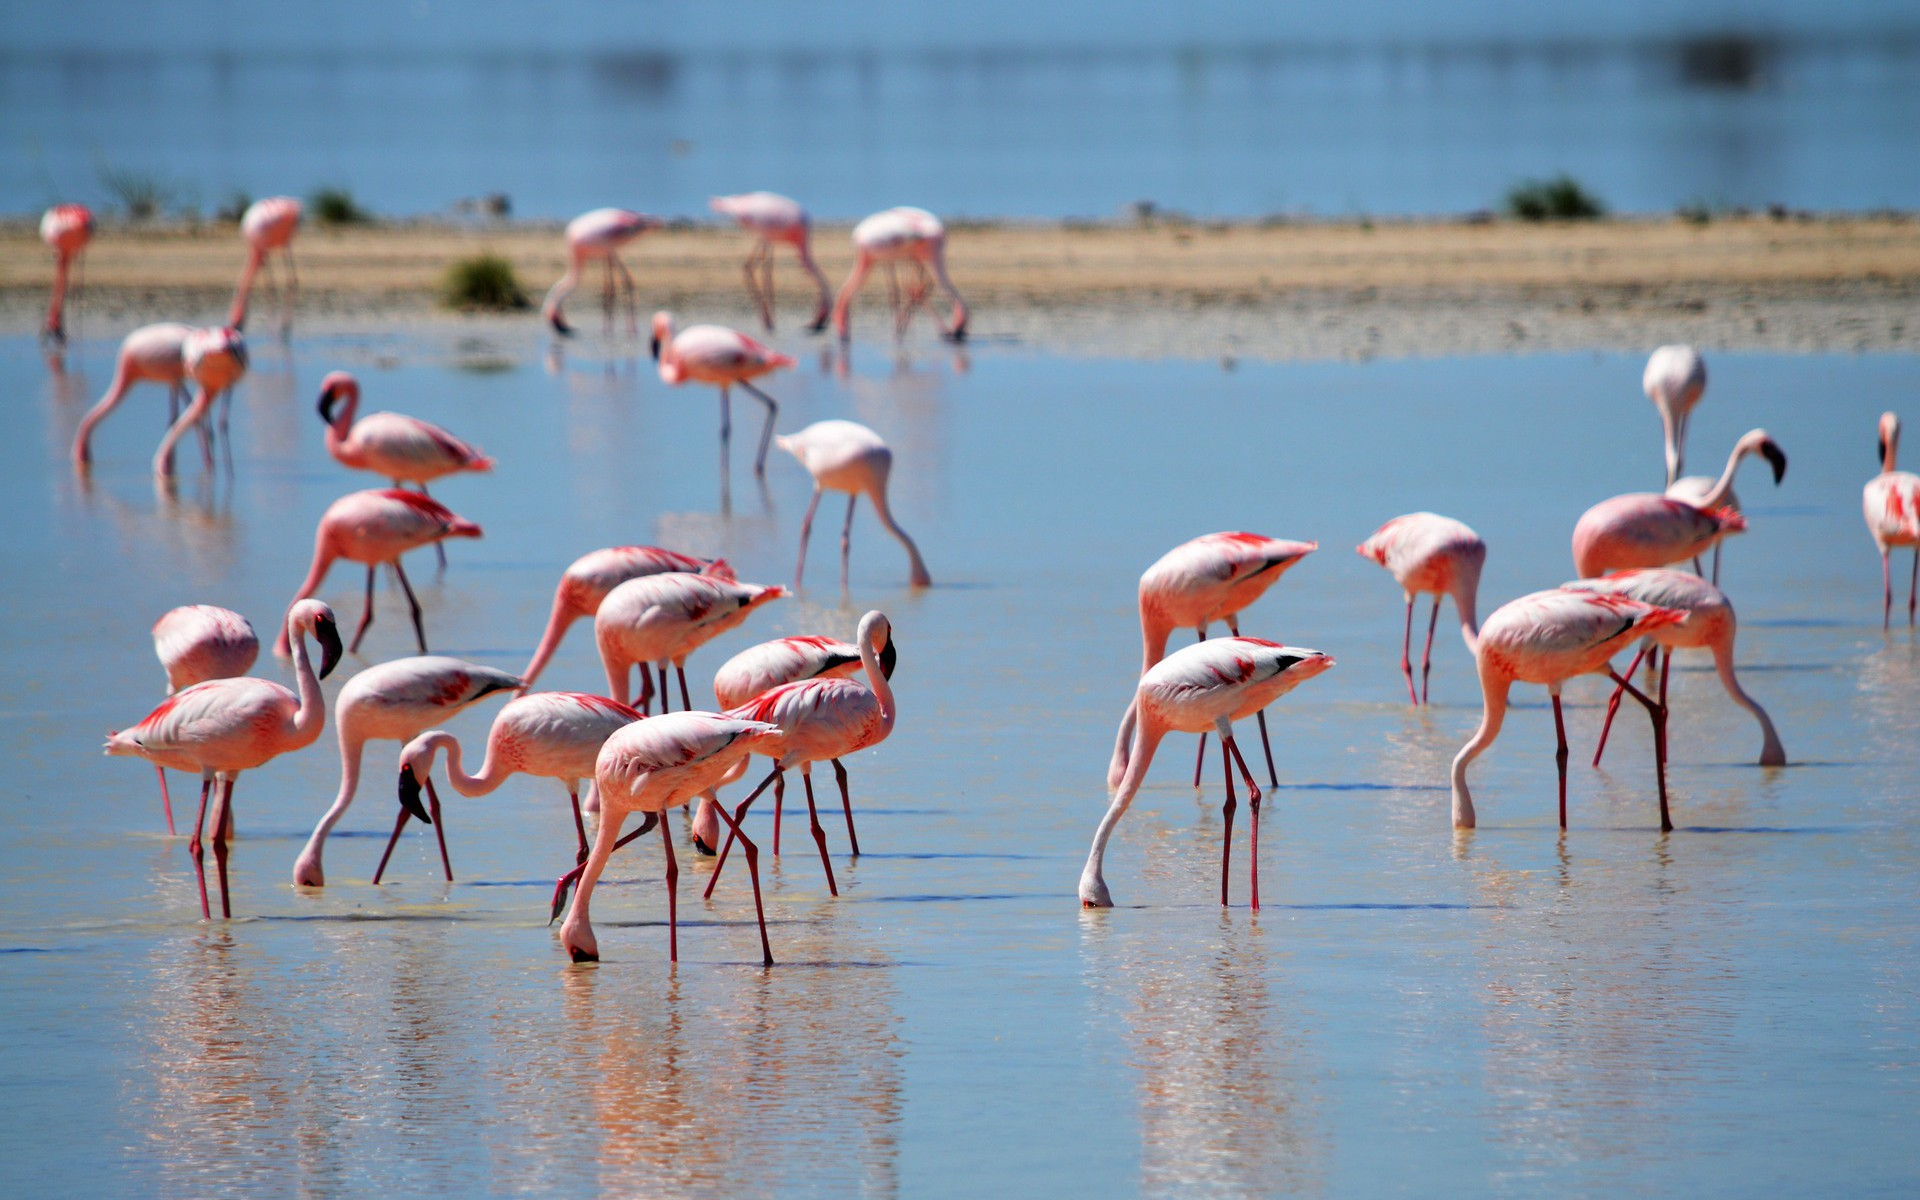 calatorie-tanzania-safari-flamingo